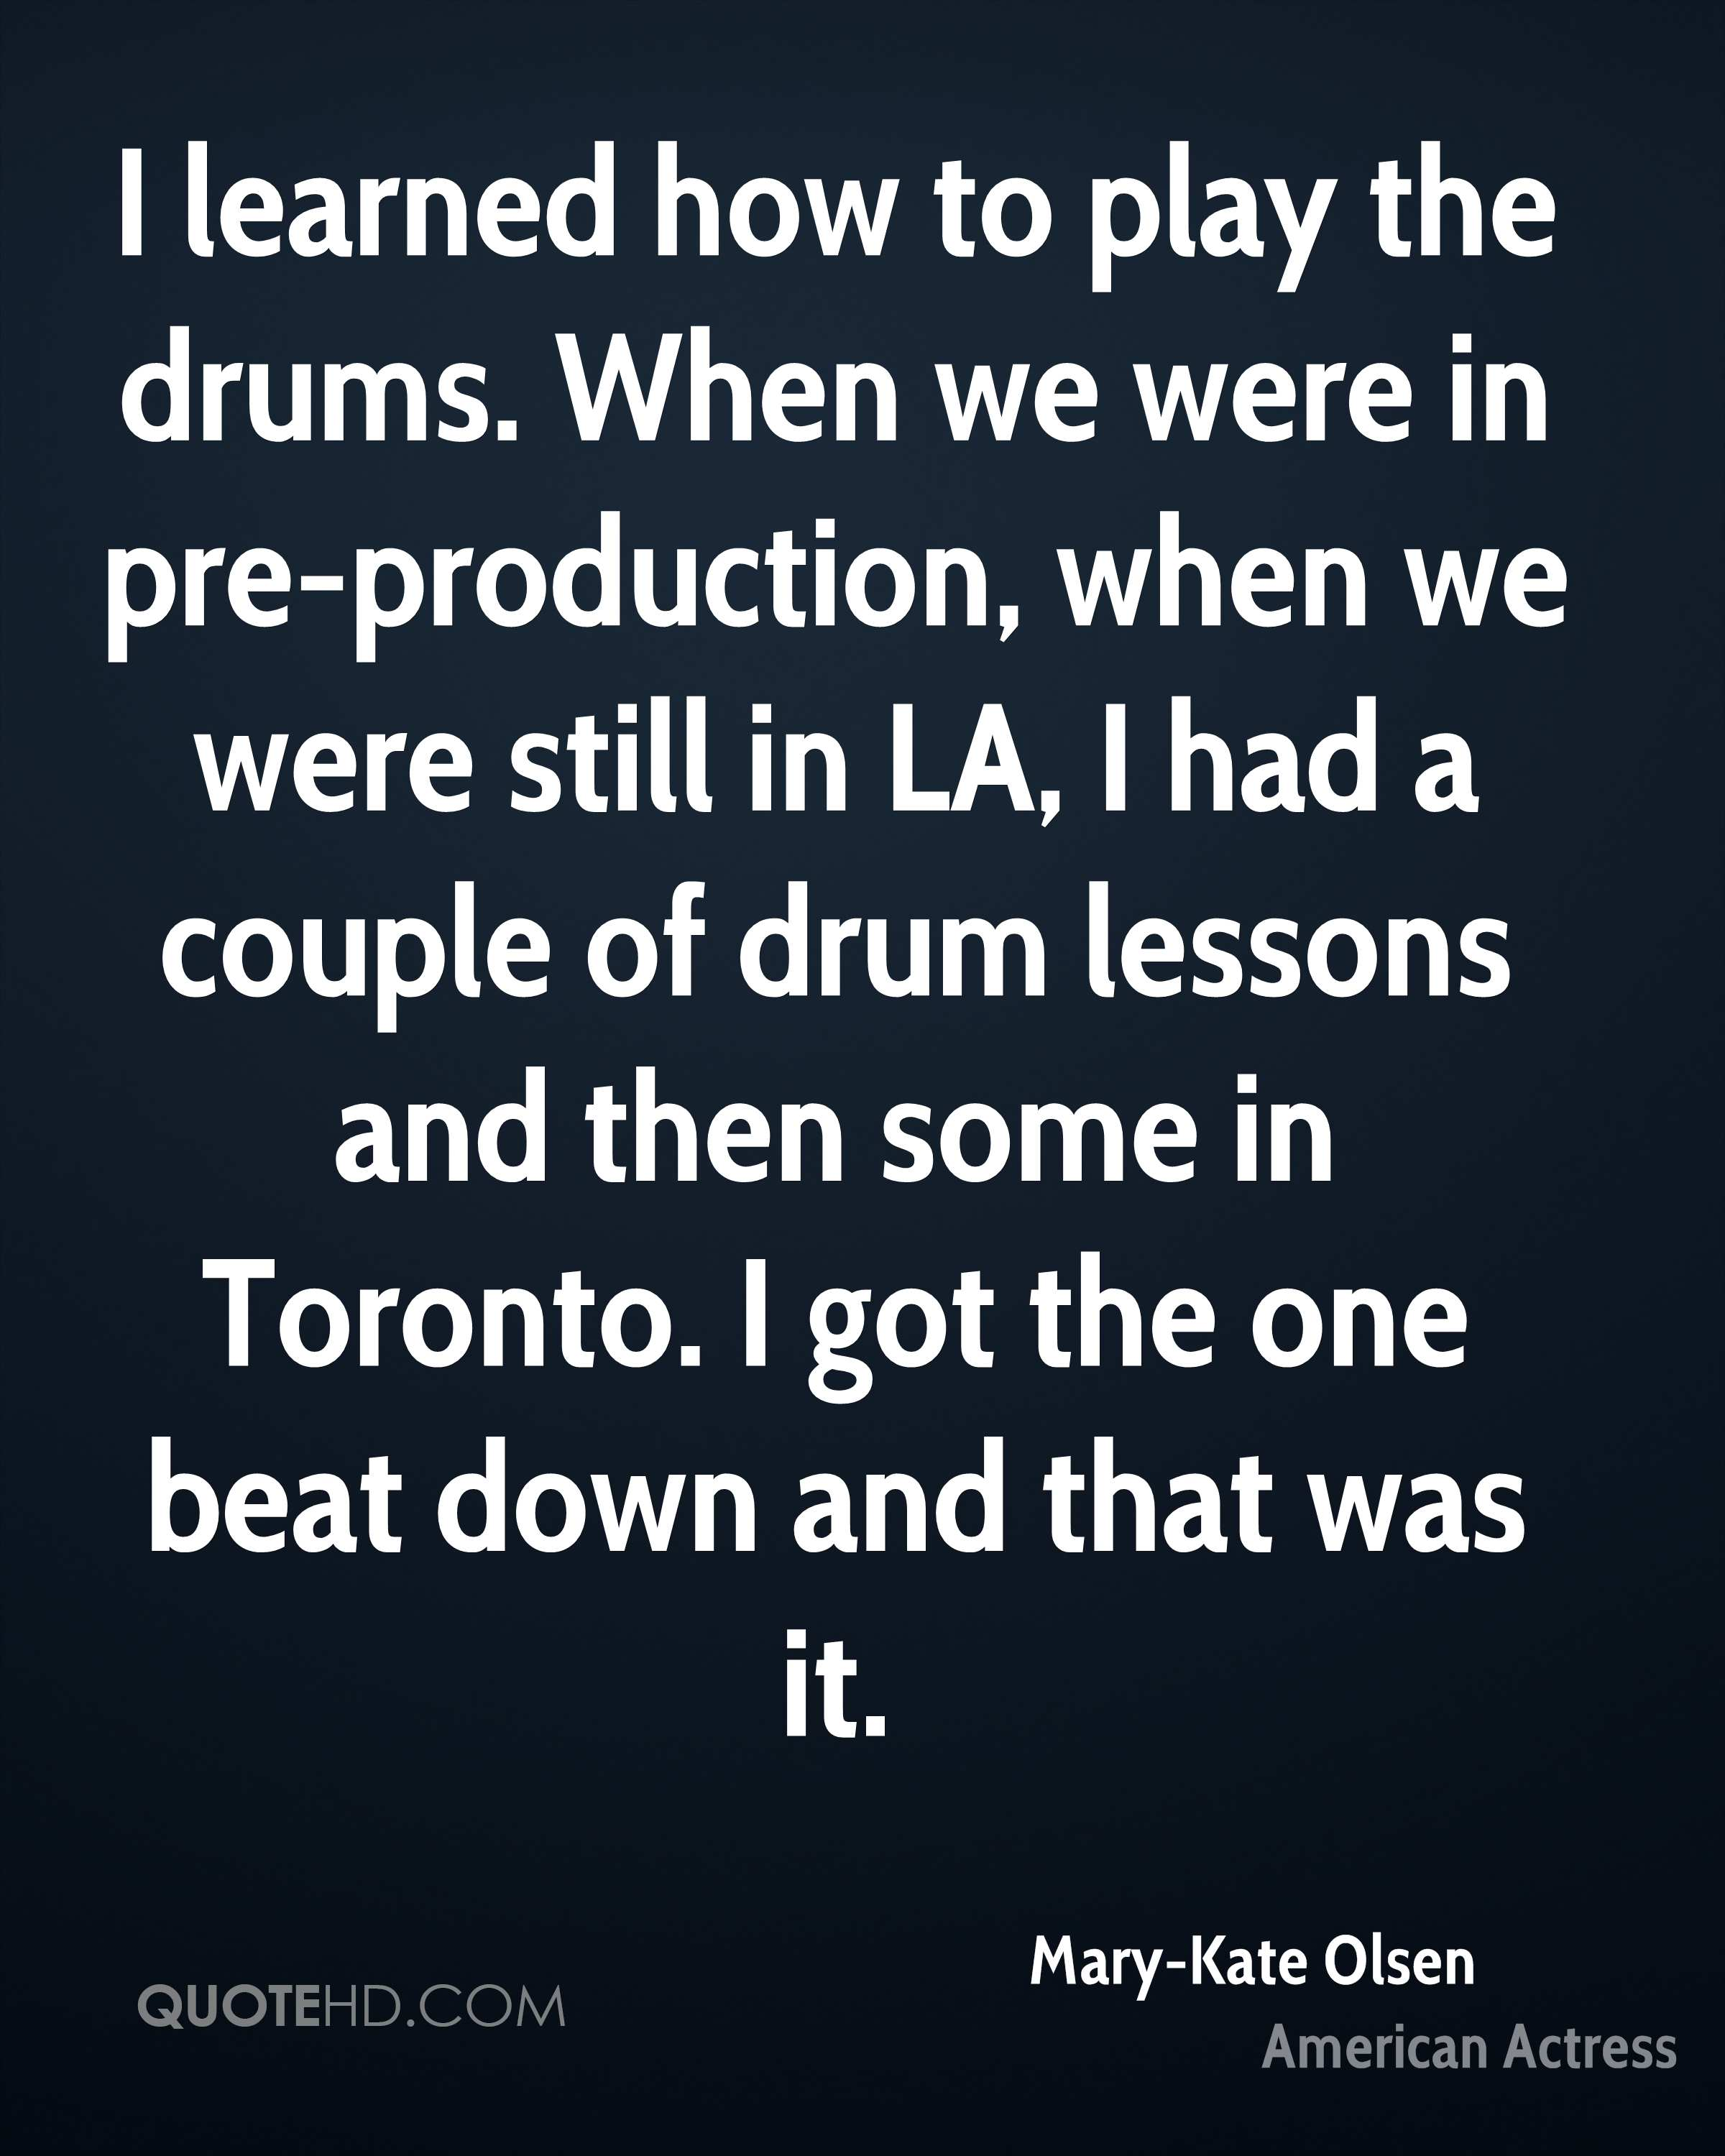 I learned how to play the drums. When we were in pre-production, when we were still in LA, I had a couple of drum lessons and then some in Toronto. I got the one beat down and that was it.